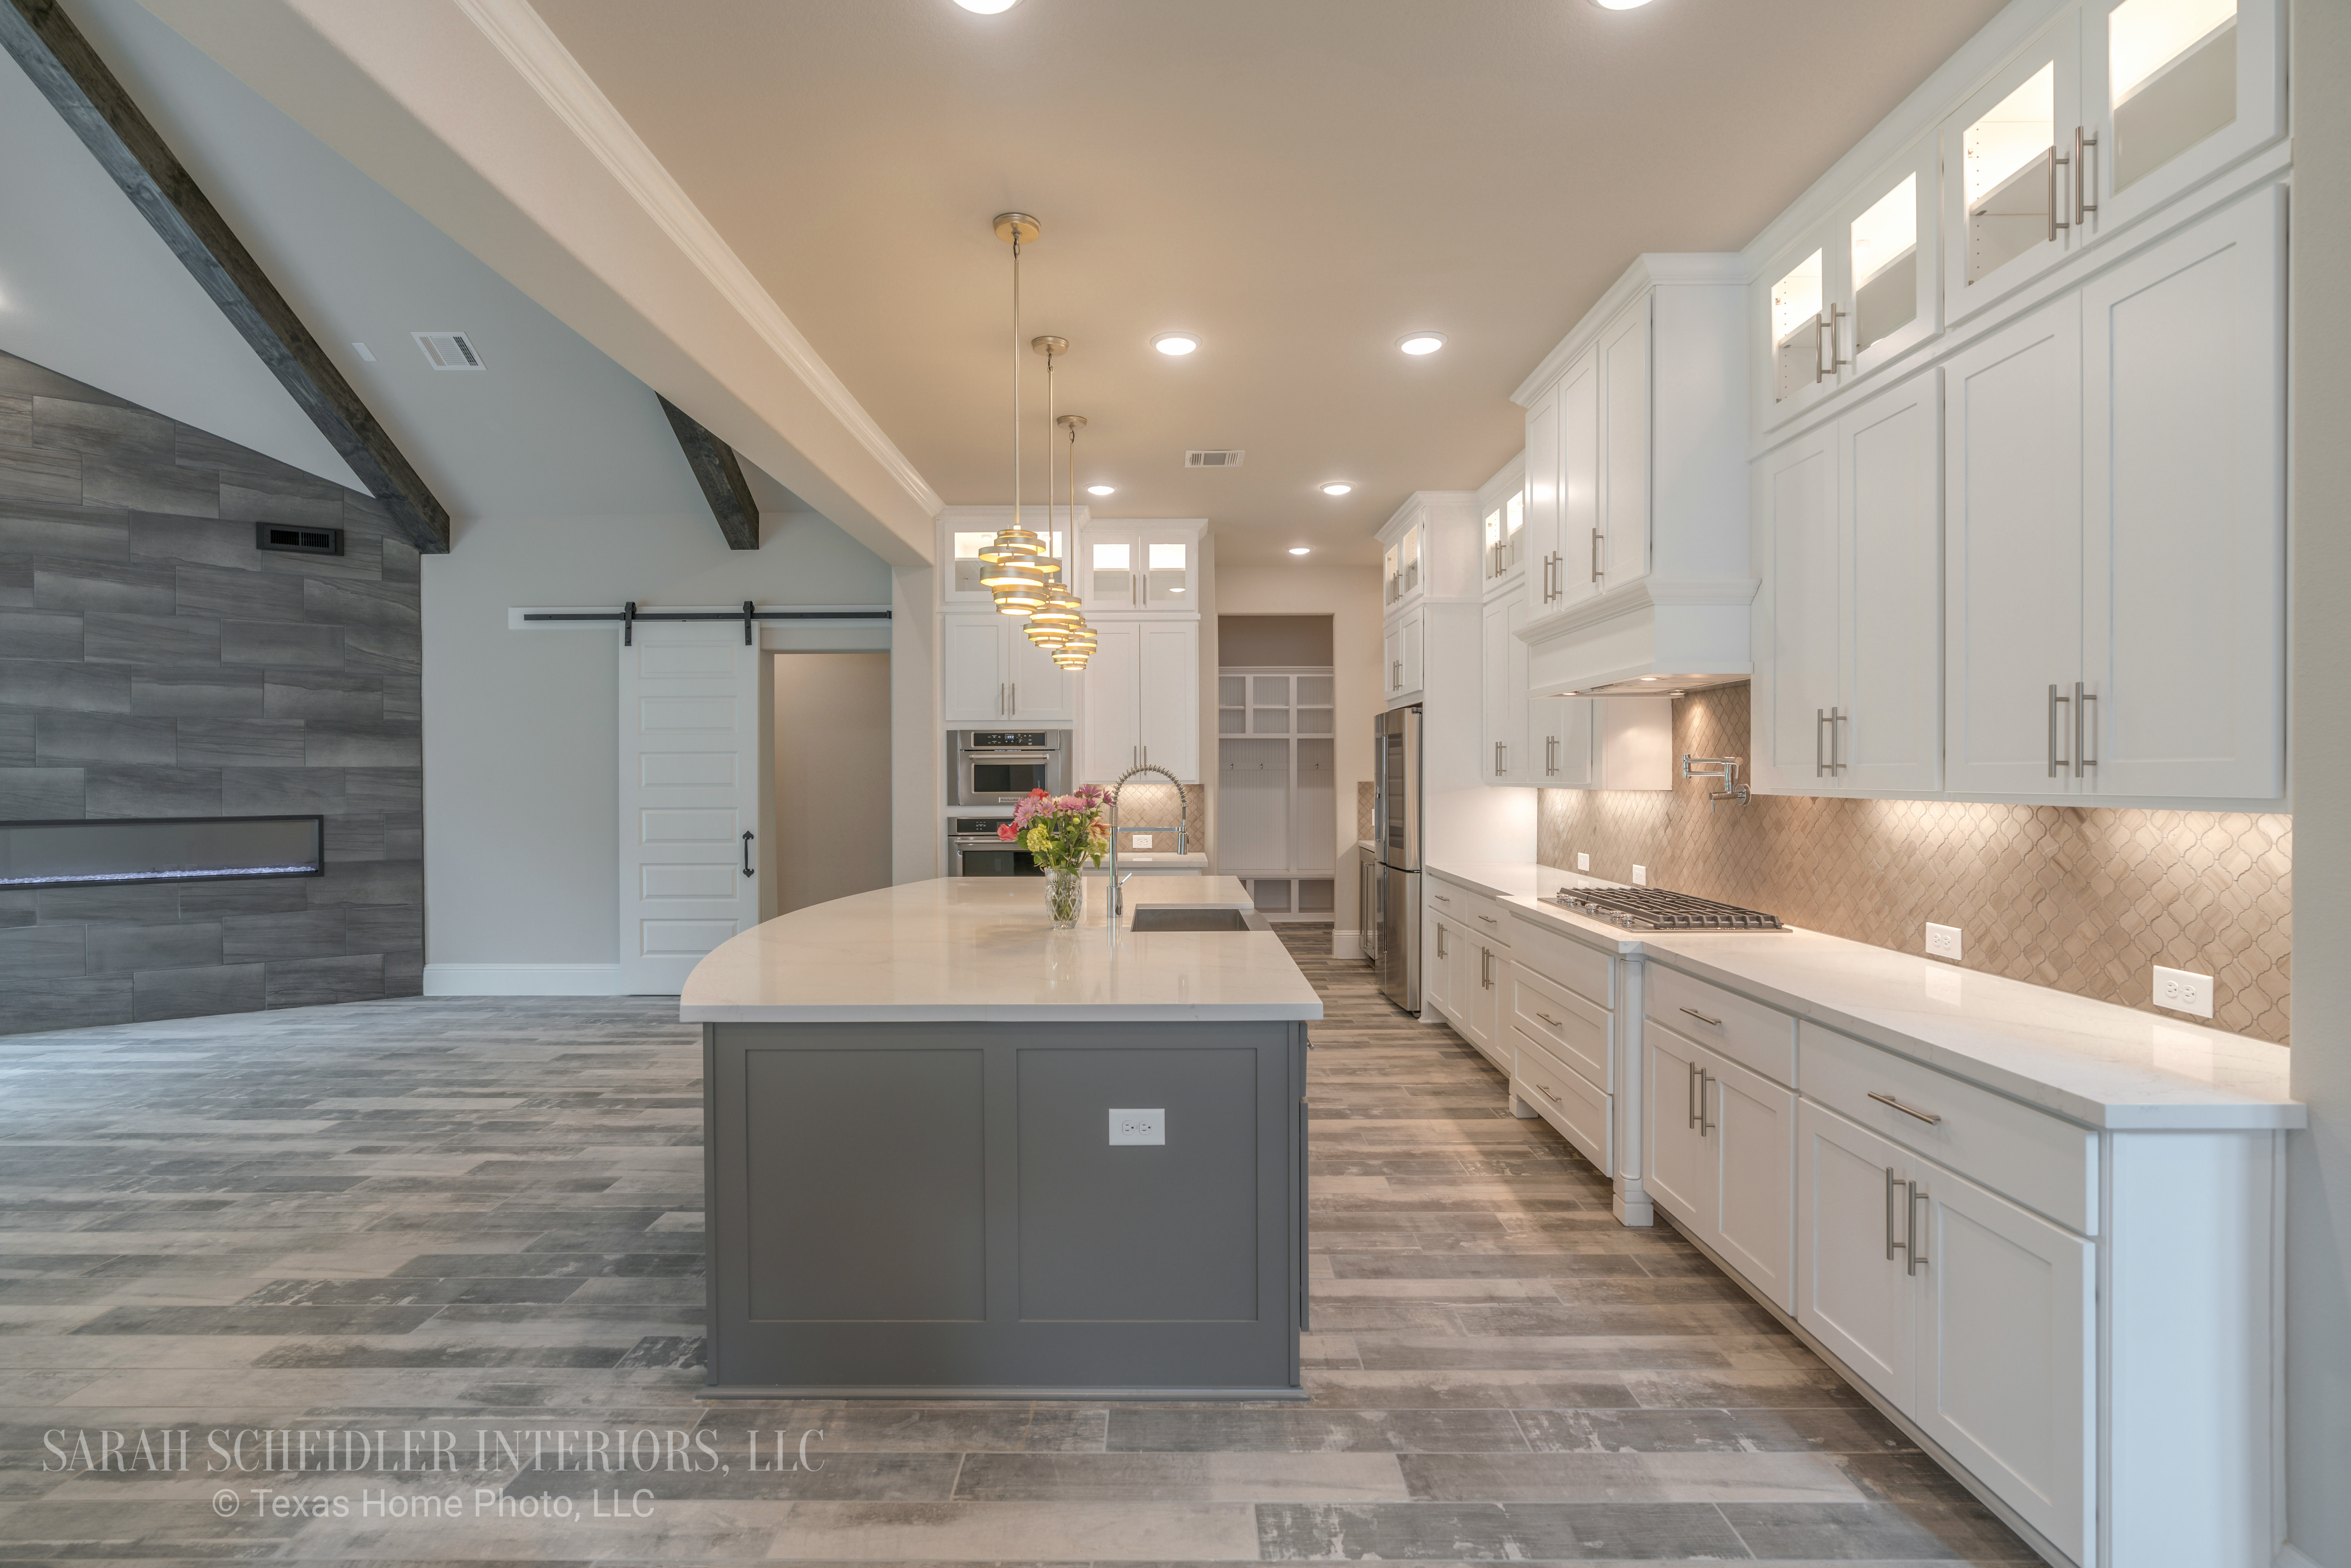 White and Grey Open-Concept Kitchen and Living Room with Floor to Ceiling Accent Tile Wall, Barn Door, and Dark Wood Beams